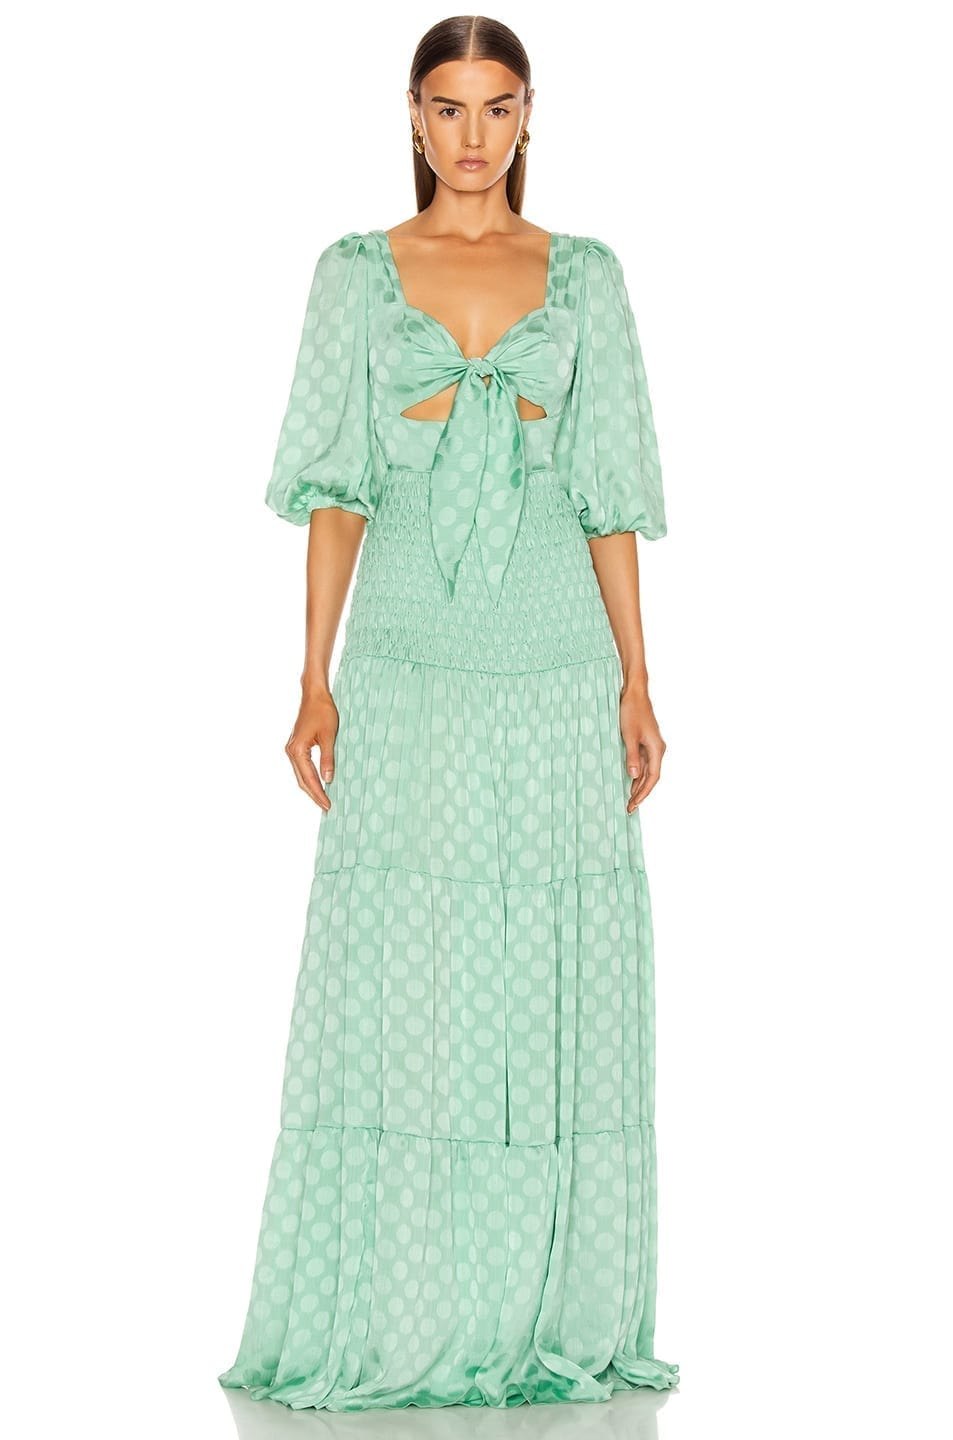 PATBO Satin Dot Ruched Maxi Dress